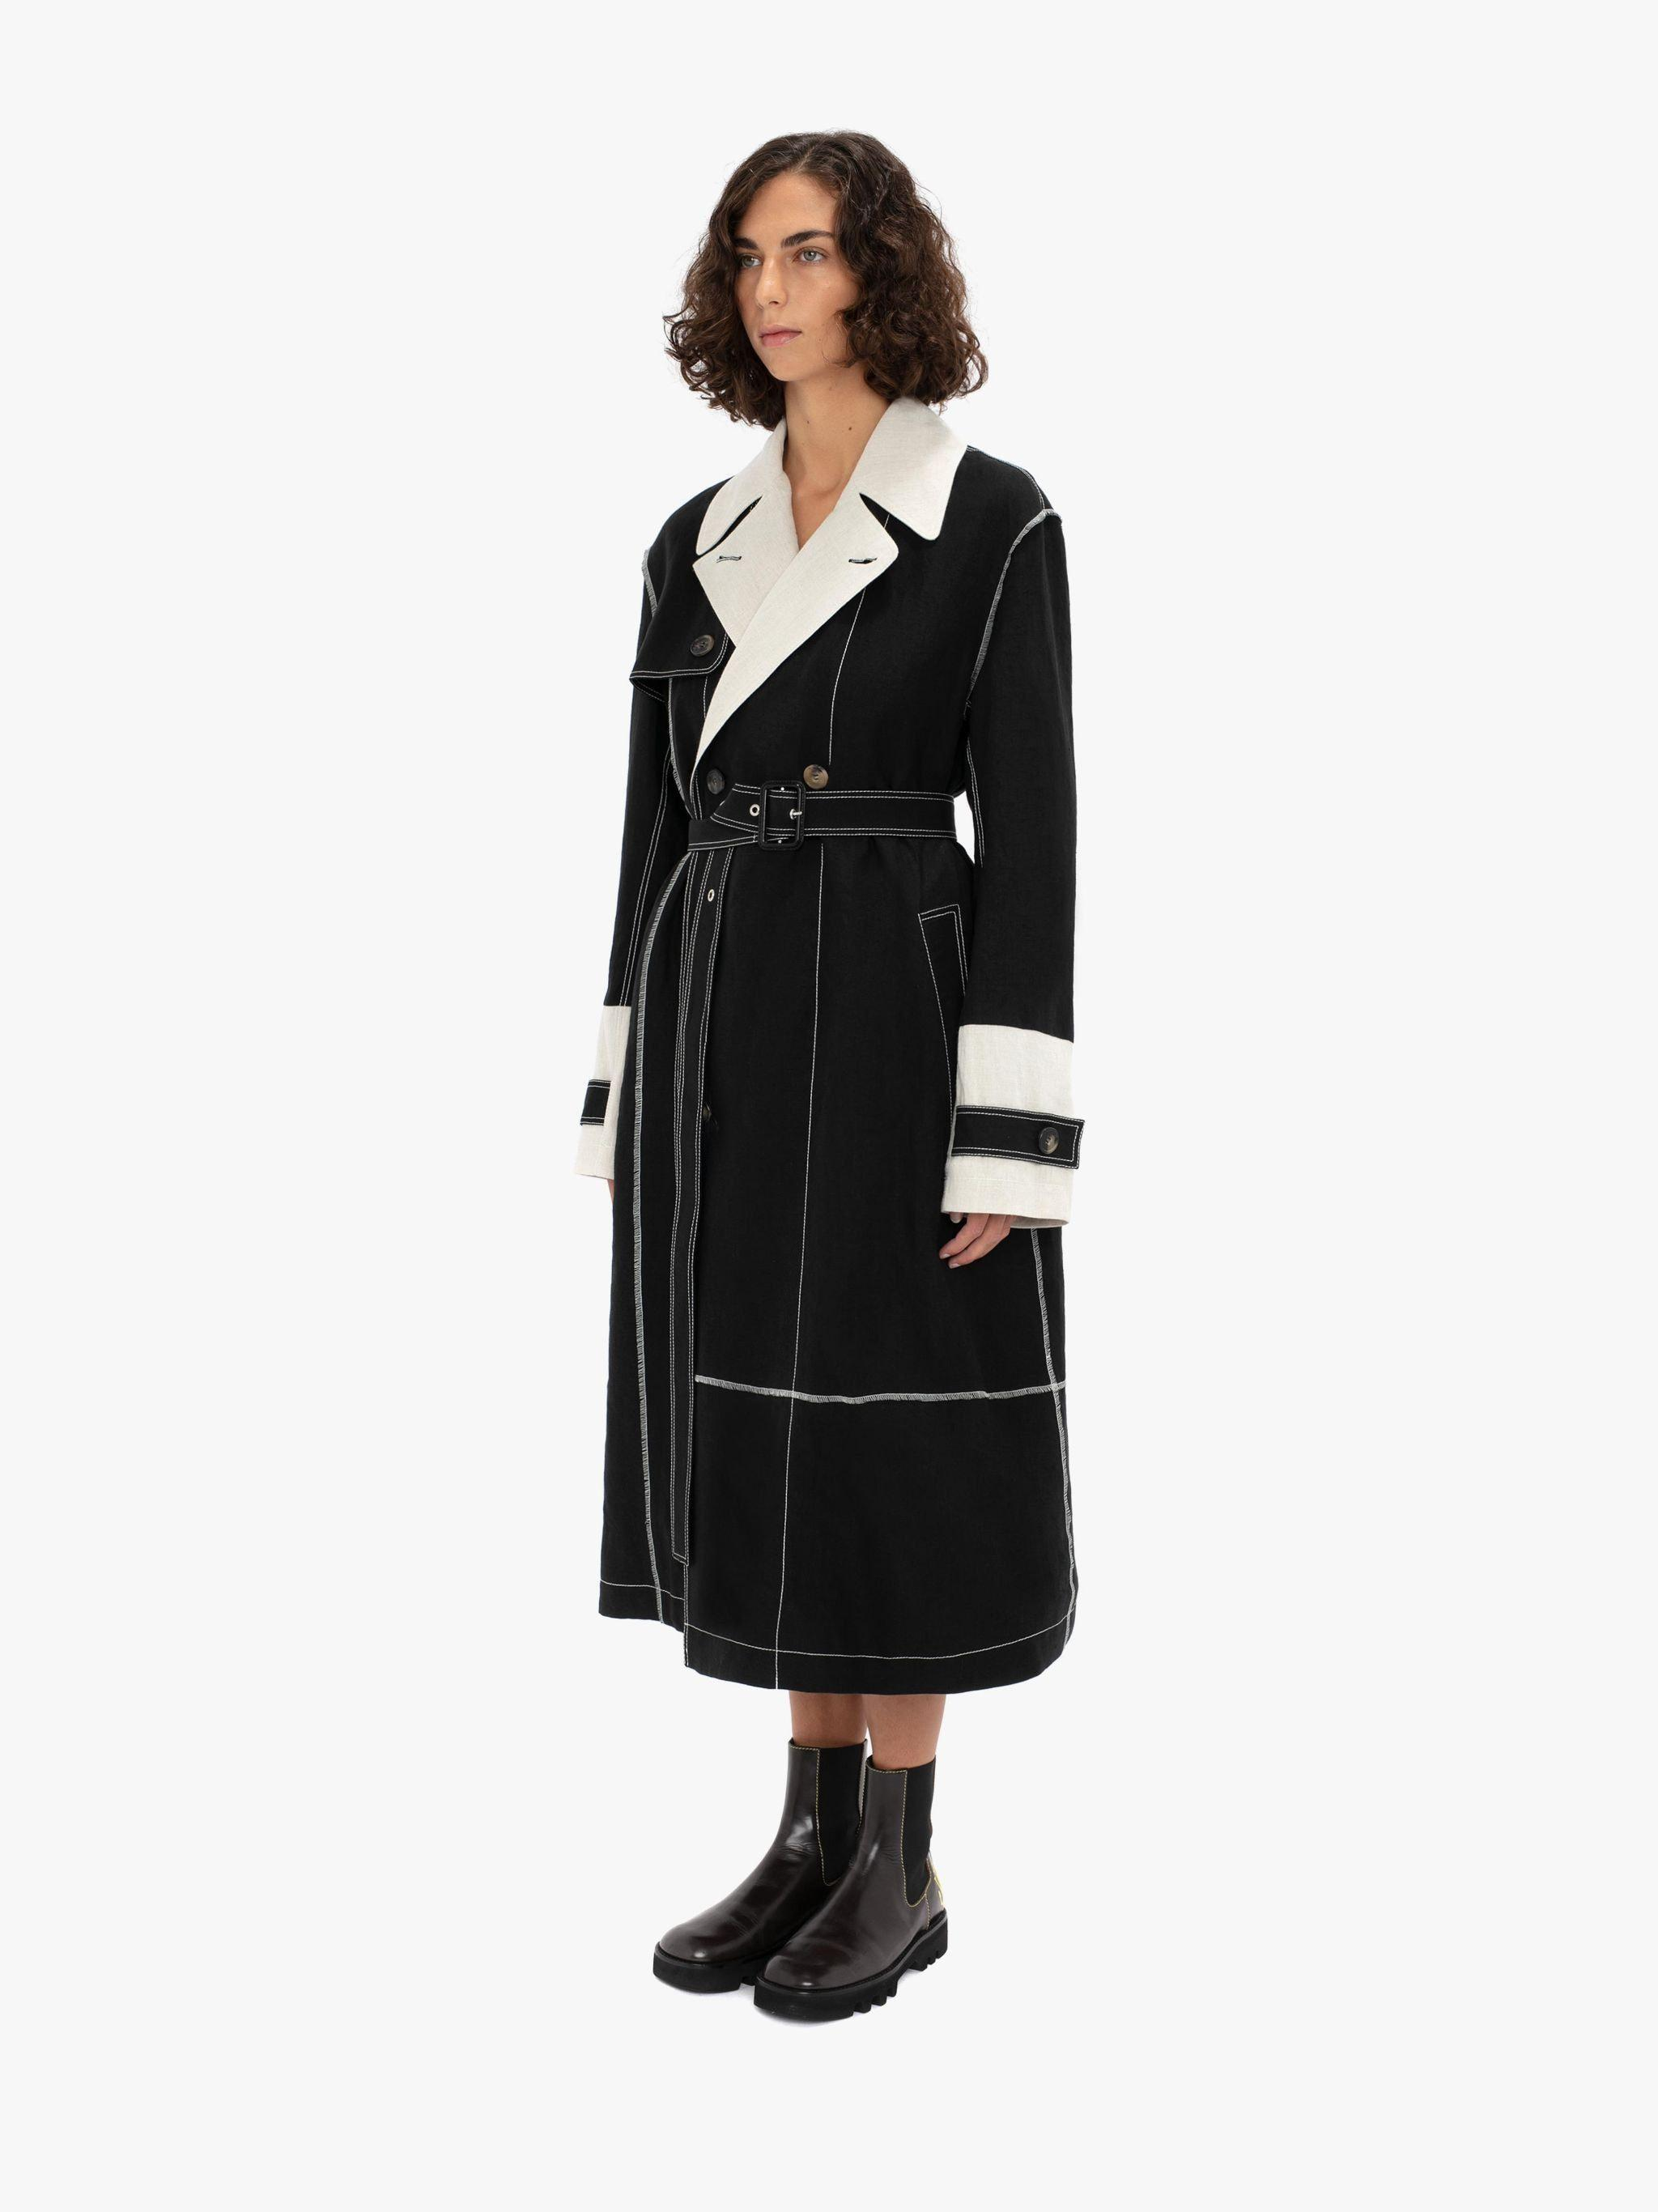 MADE IN BRITAIN: TRENCH COAT 2